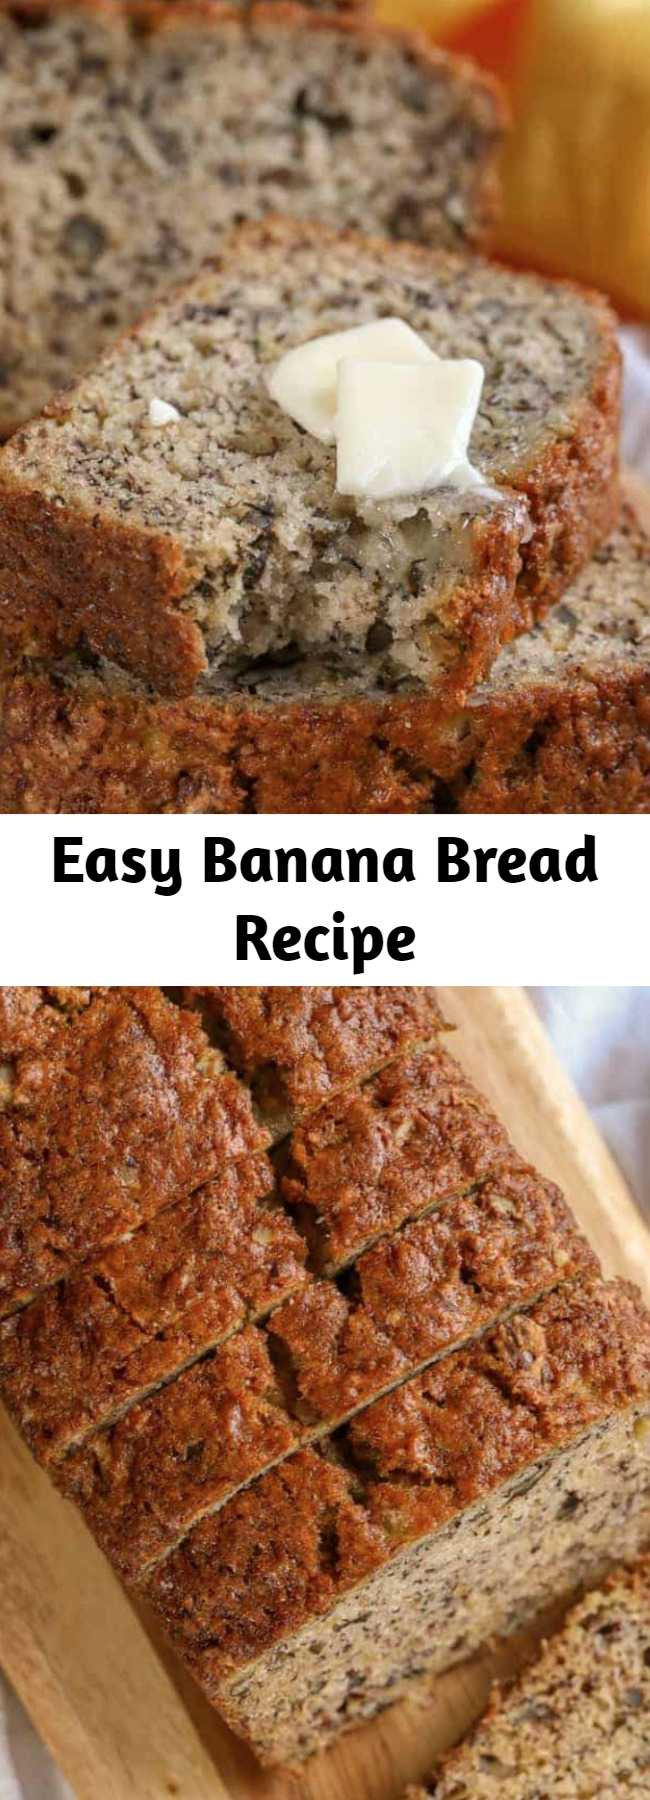 Easy Banana Bread Recipe - This banana bread is one of the easiest recipes I've ever tried and turns out perfectly every time! Feel free to substitute your favorite nuts (like walnuts) or even add in chocolate chips.